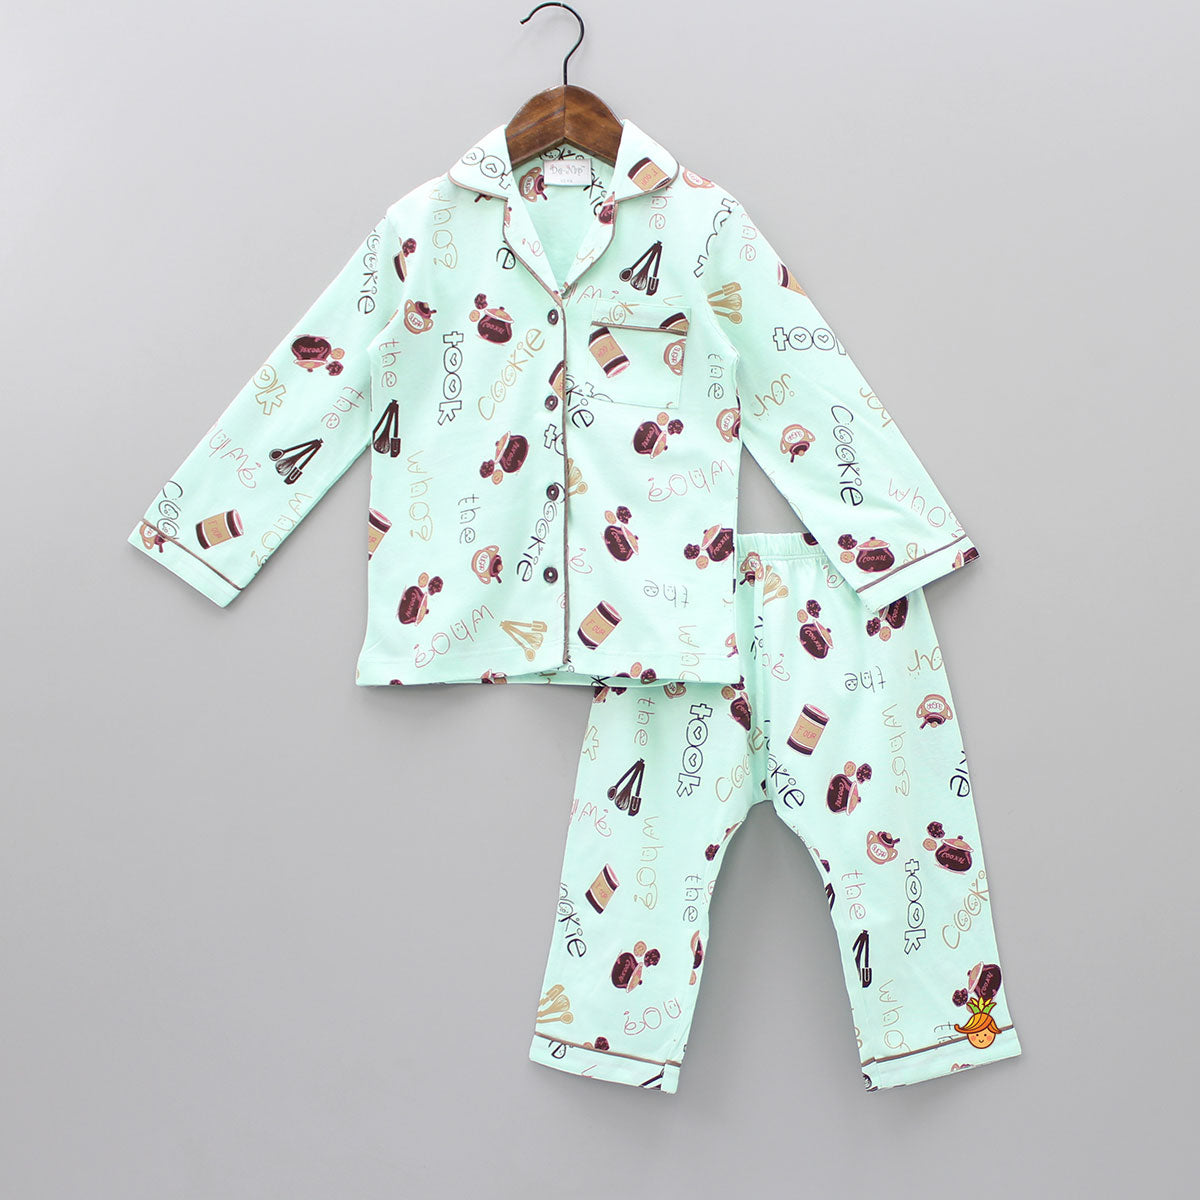 Cookie Love Sleepwear